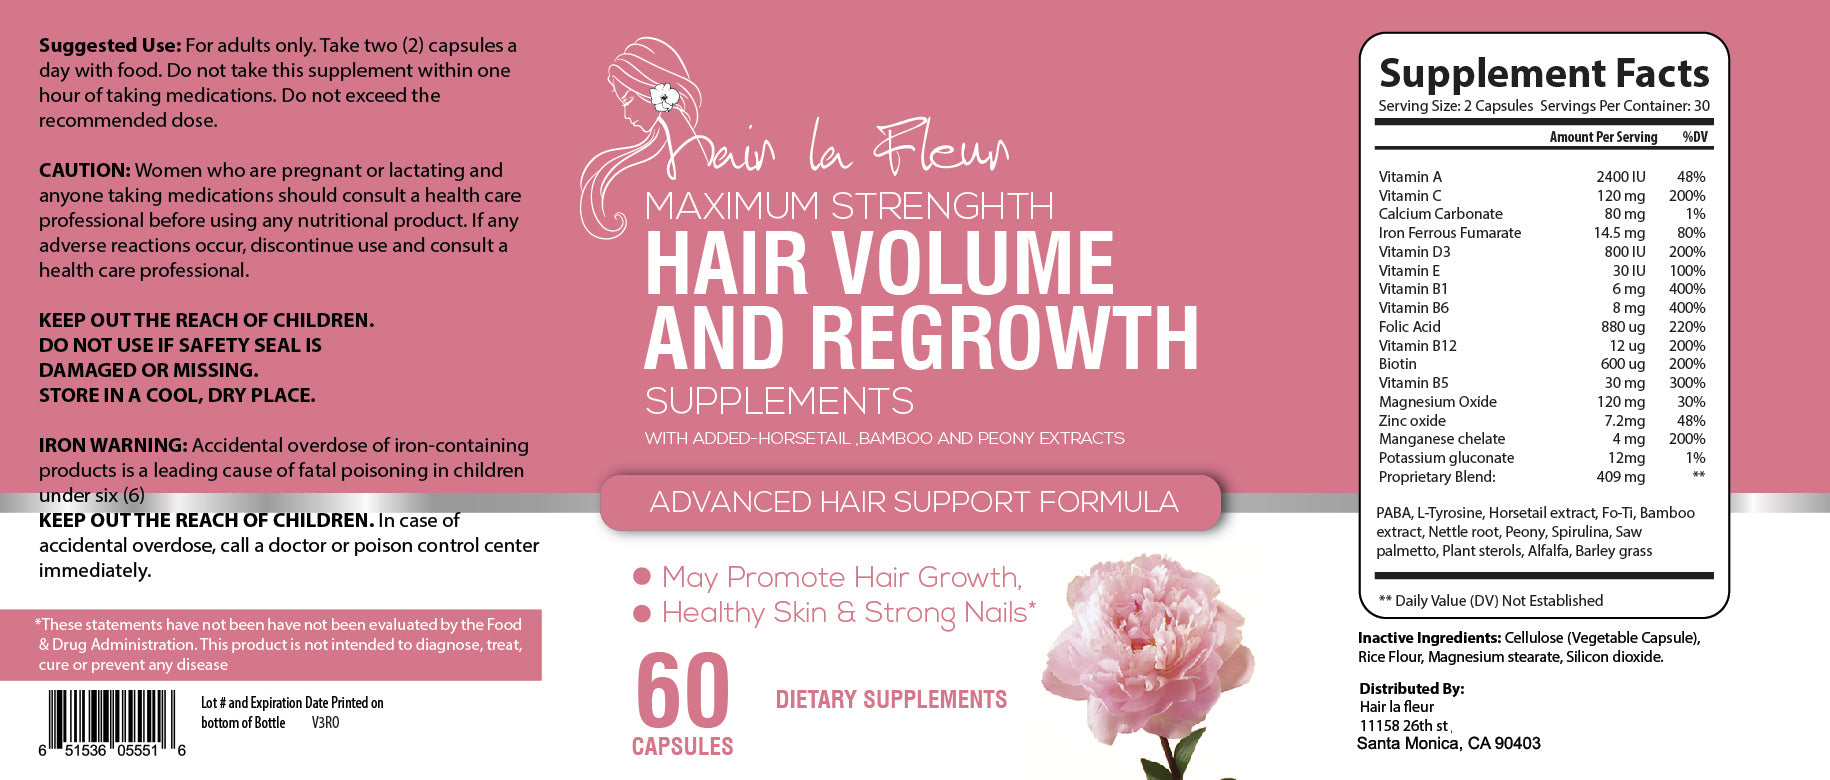 Hair La Fluer Maximum, Hair Growth, Island formulation with Horsetail, Bamboo and Peony extract